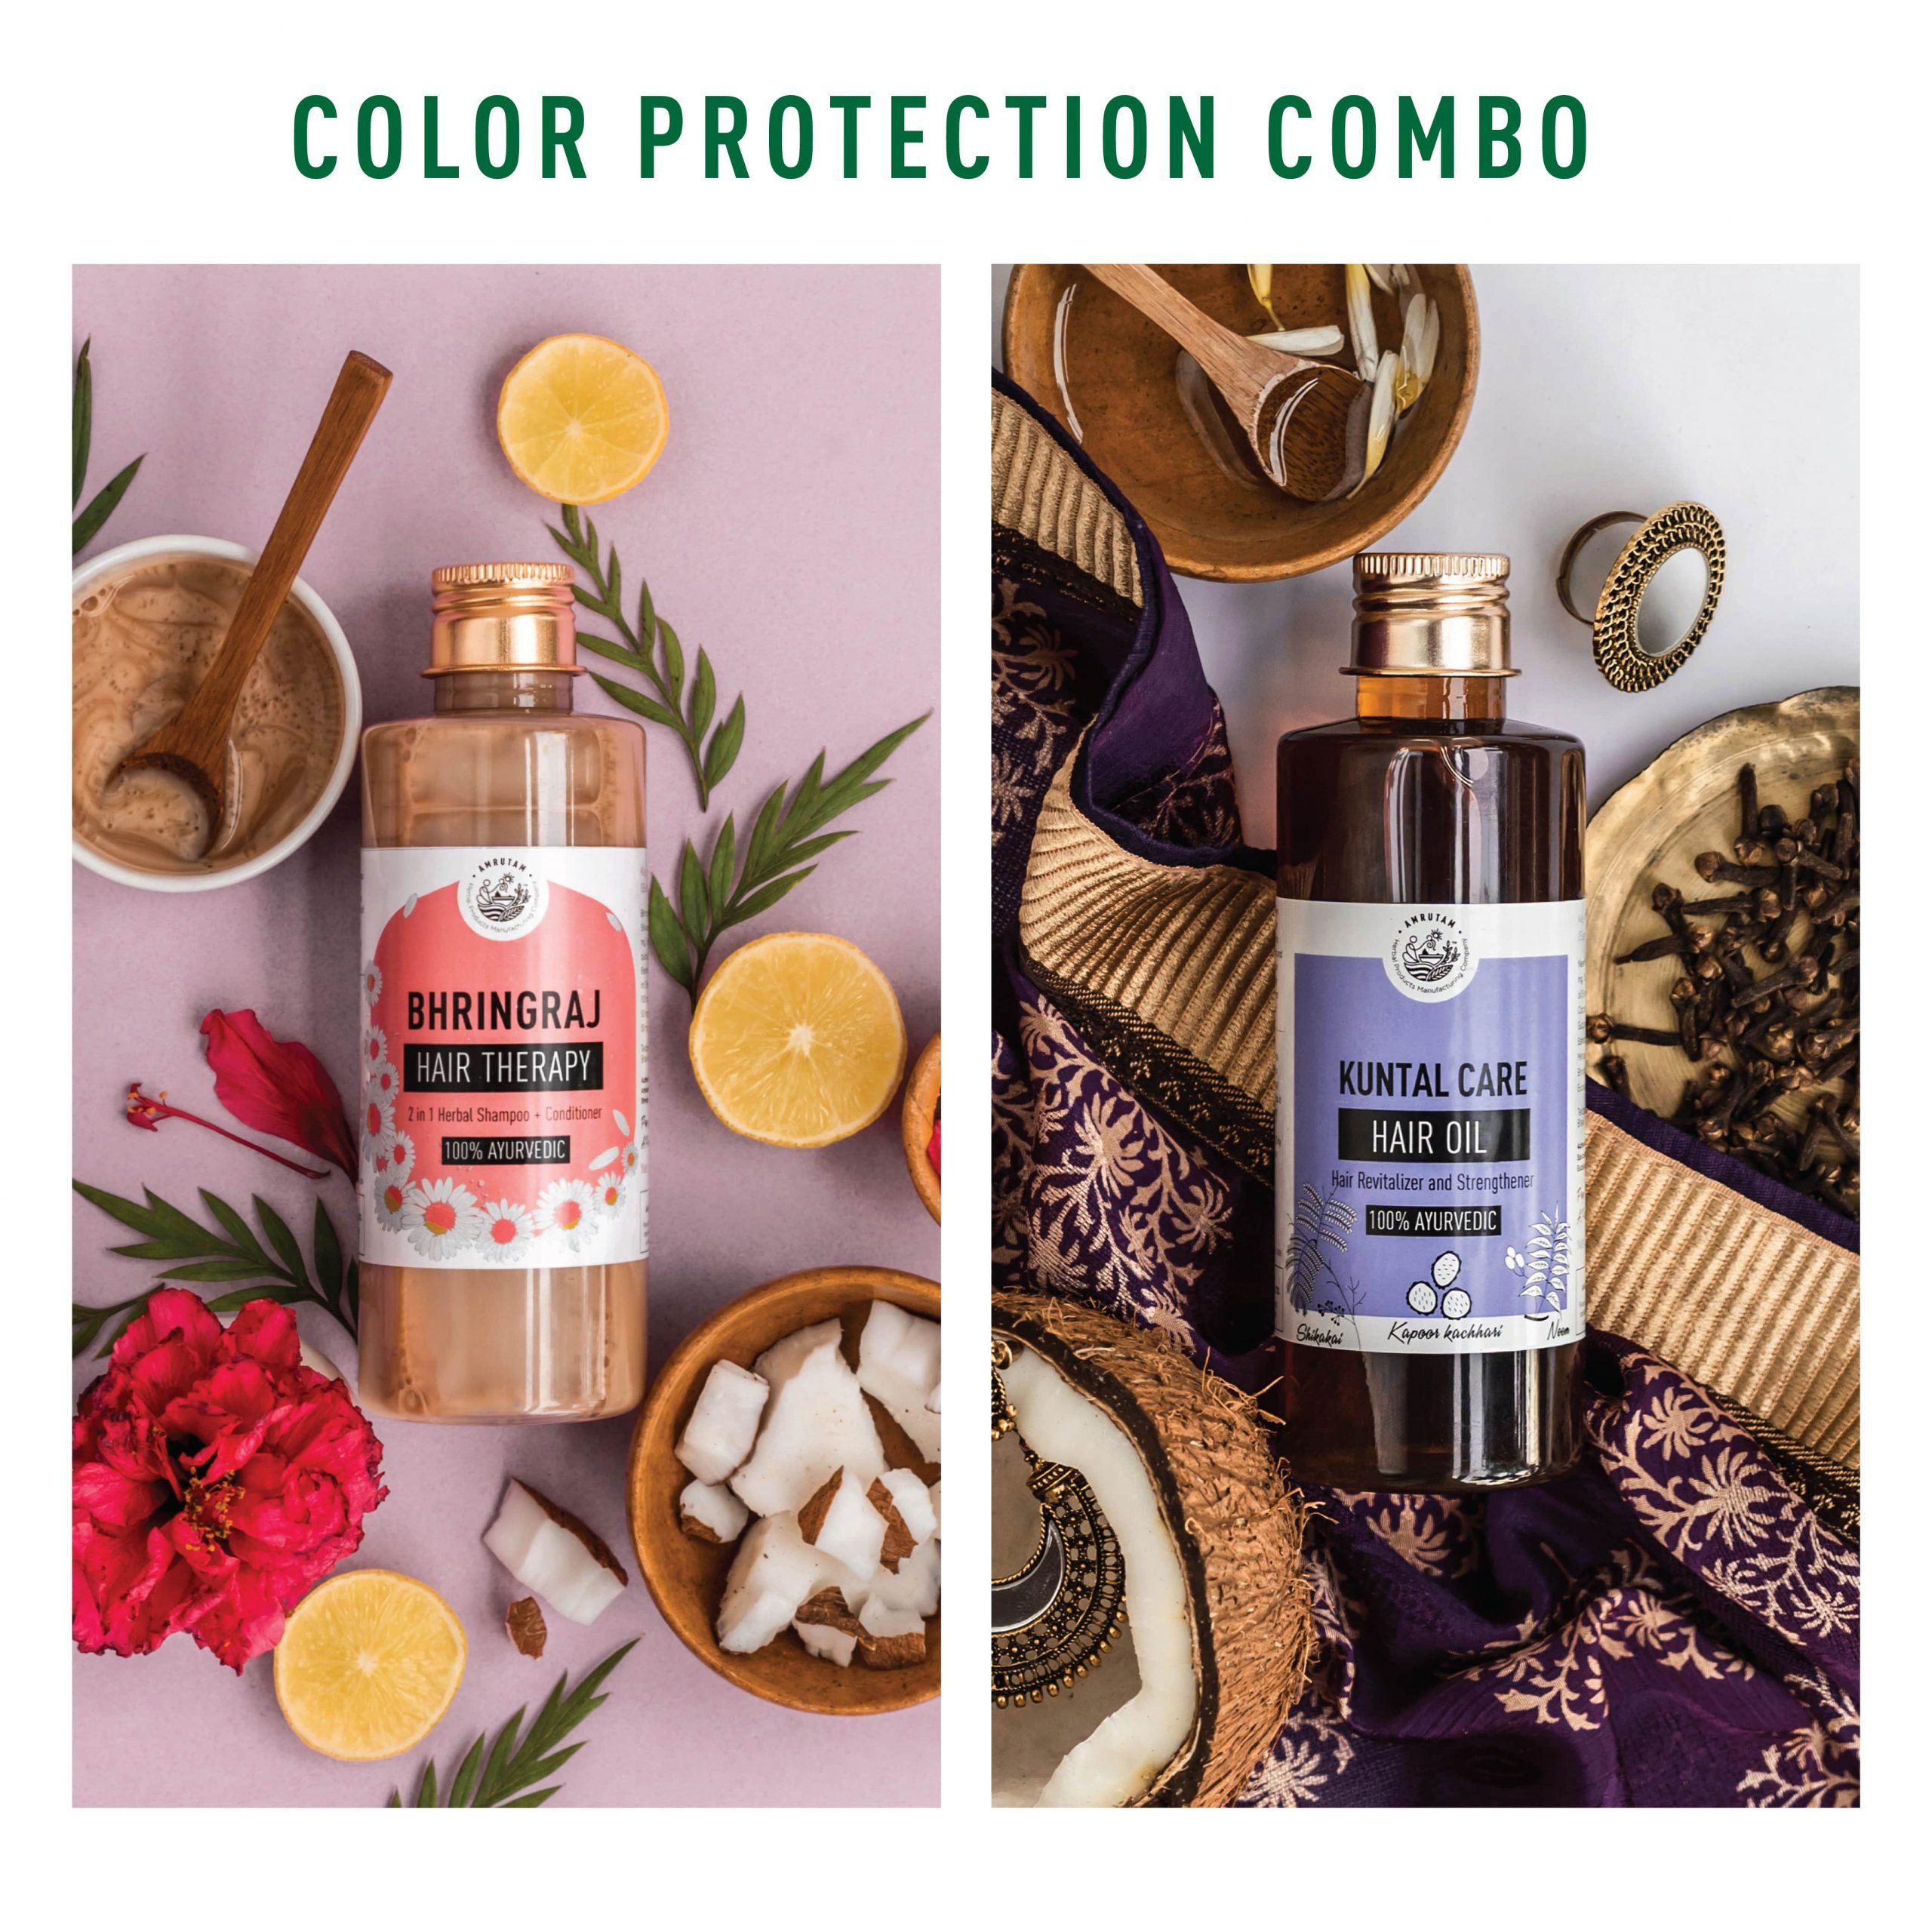 Bhringraj Hair Therapy- 2 in 1 Herbal Shampoo and Conditioner